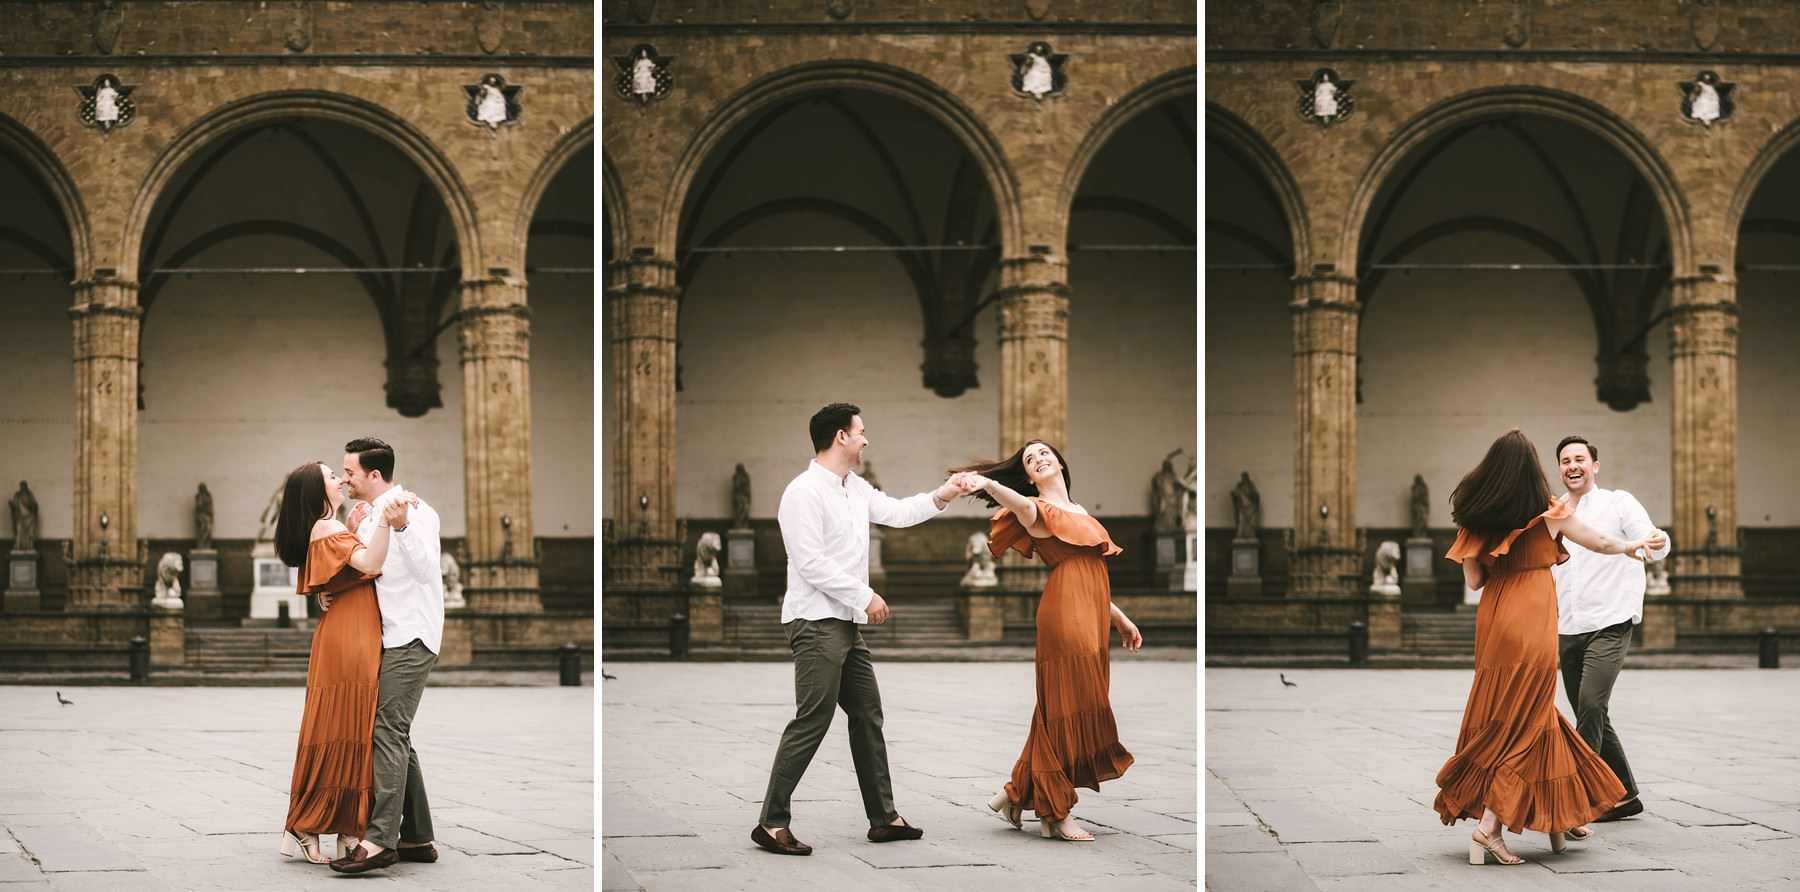 Exciting early morning couple portrait photo shoot in the charming city of Florence